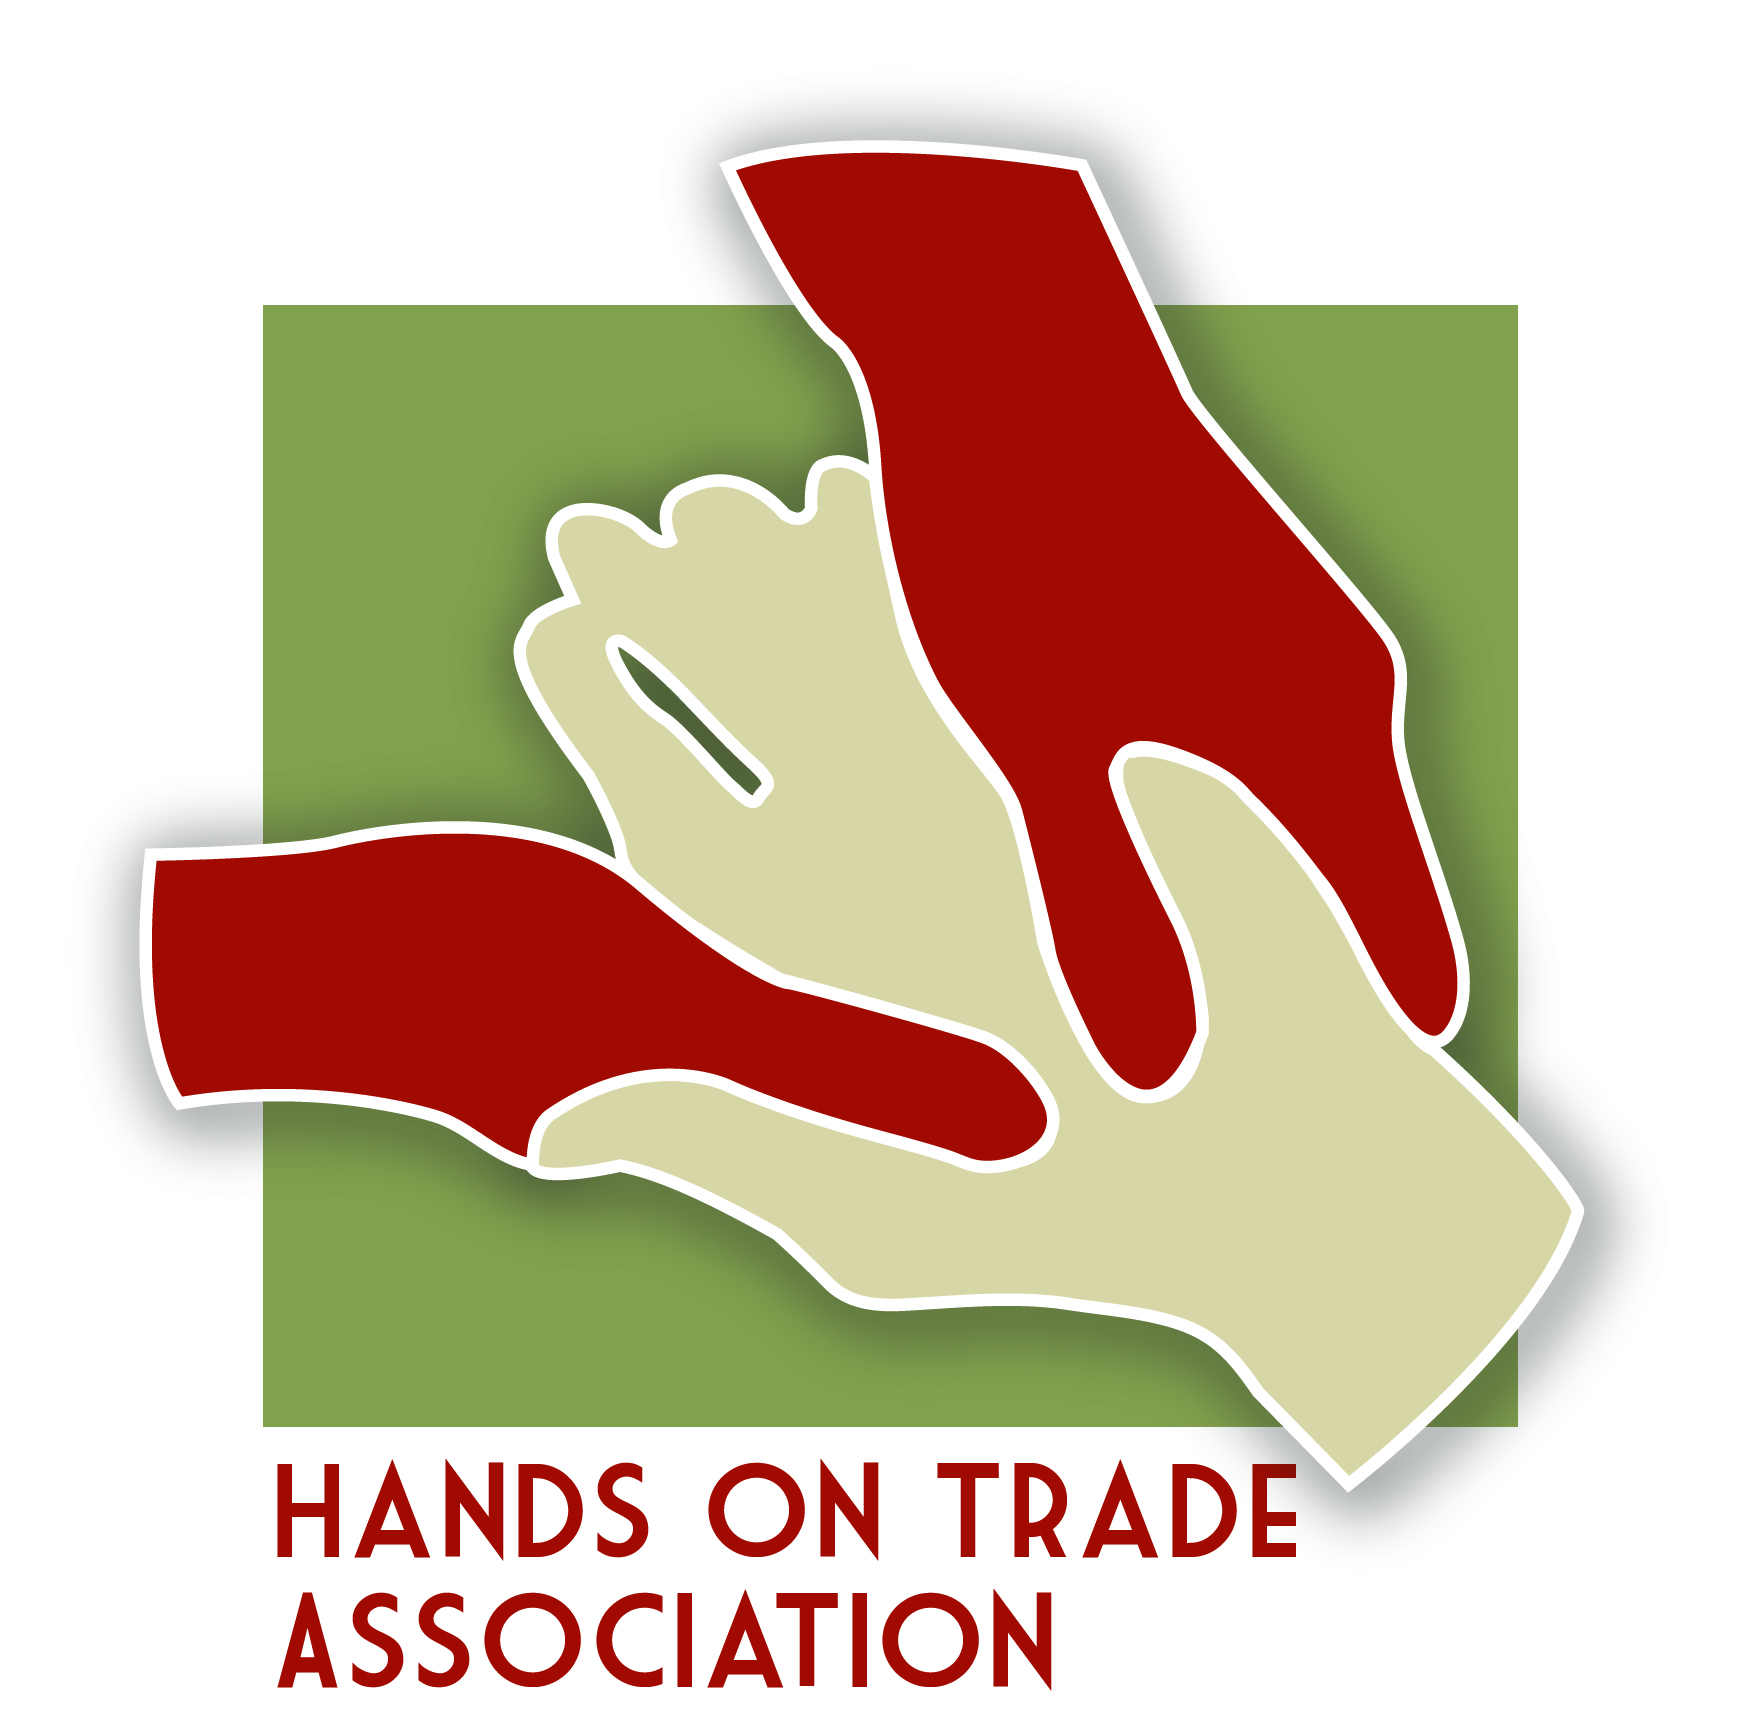 The Hands On Trade Association